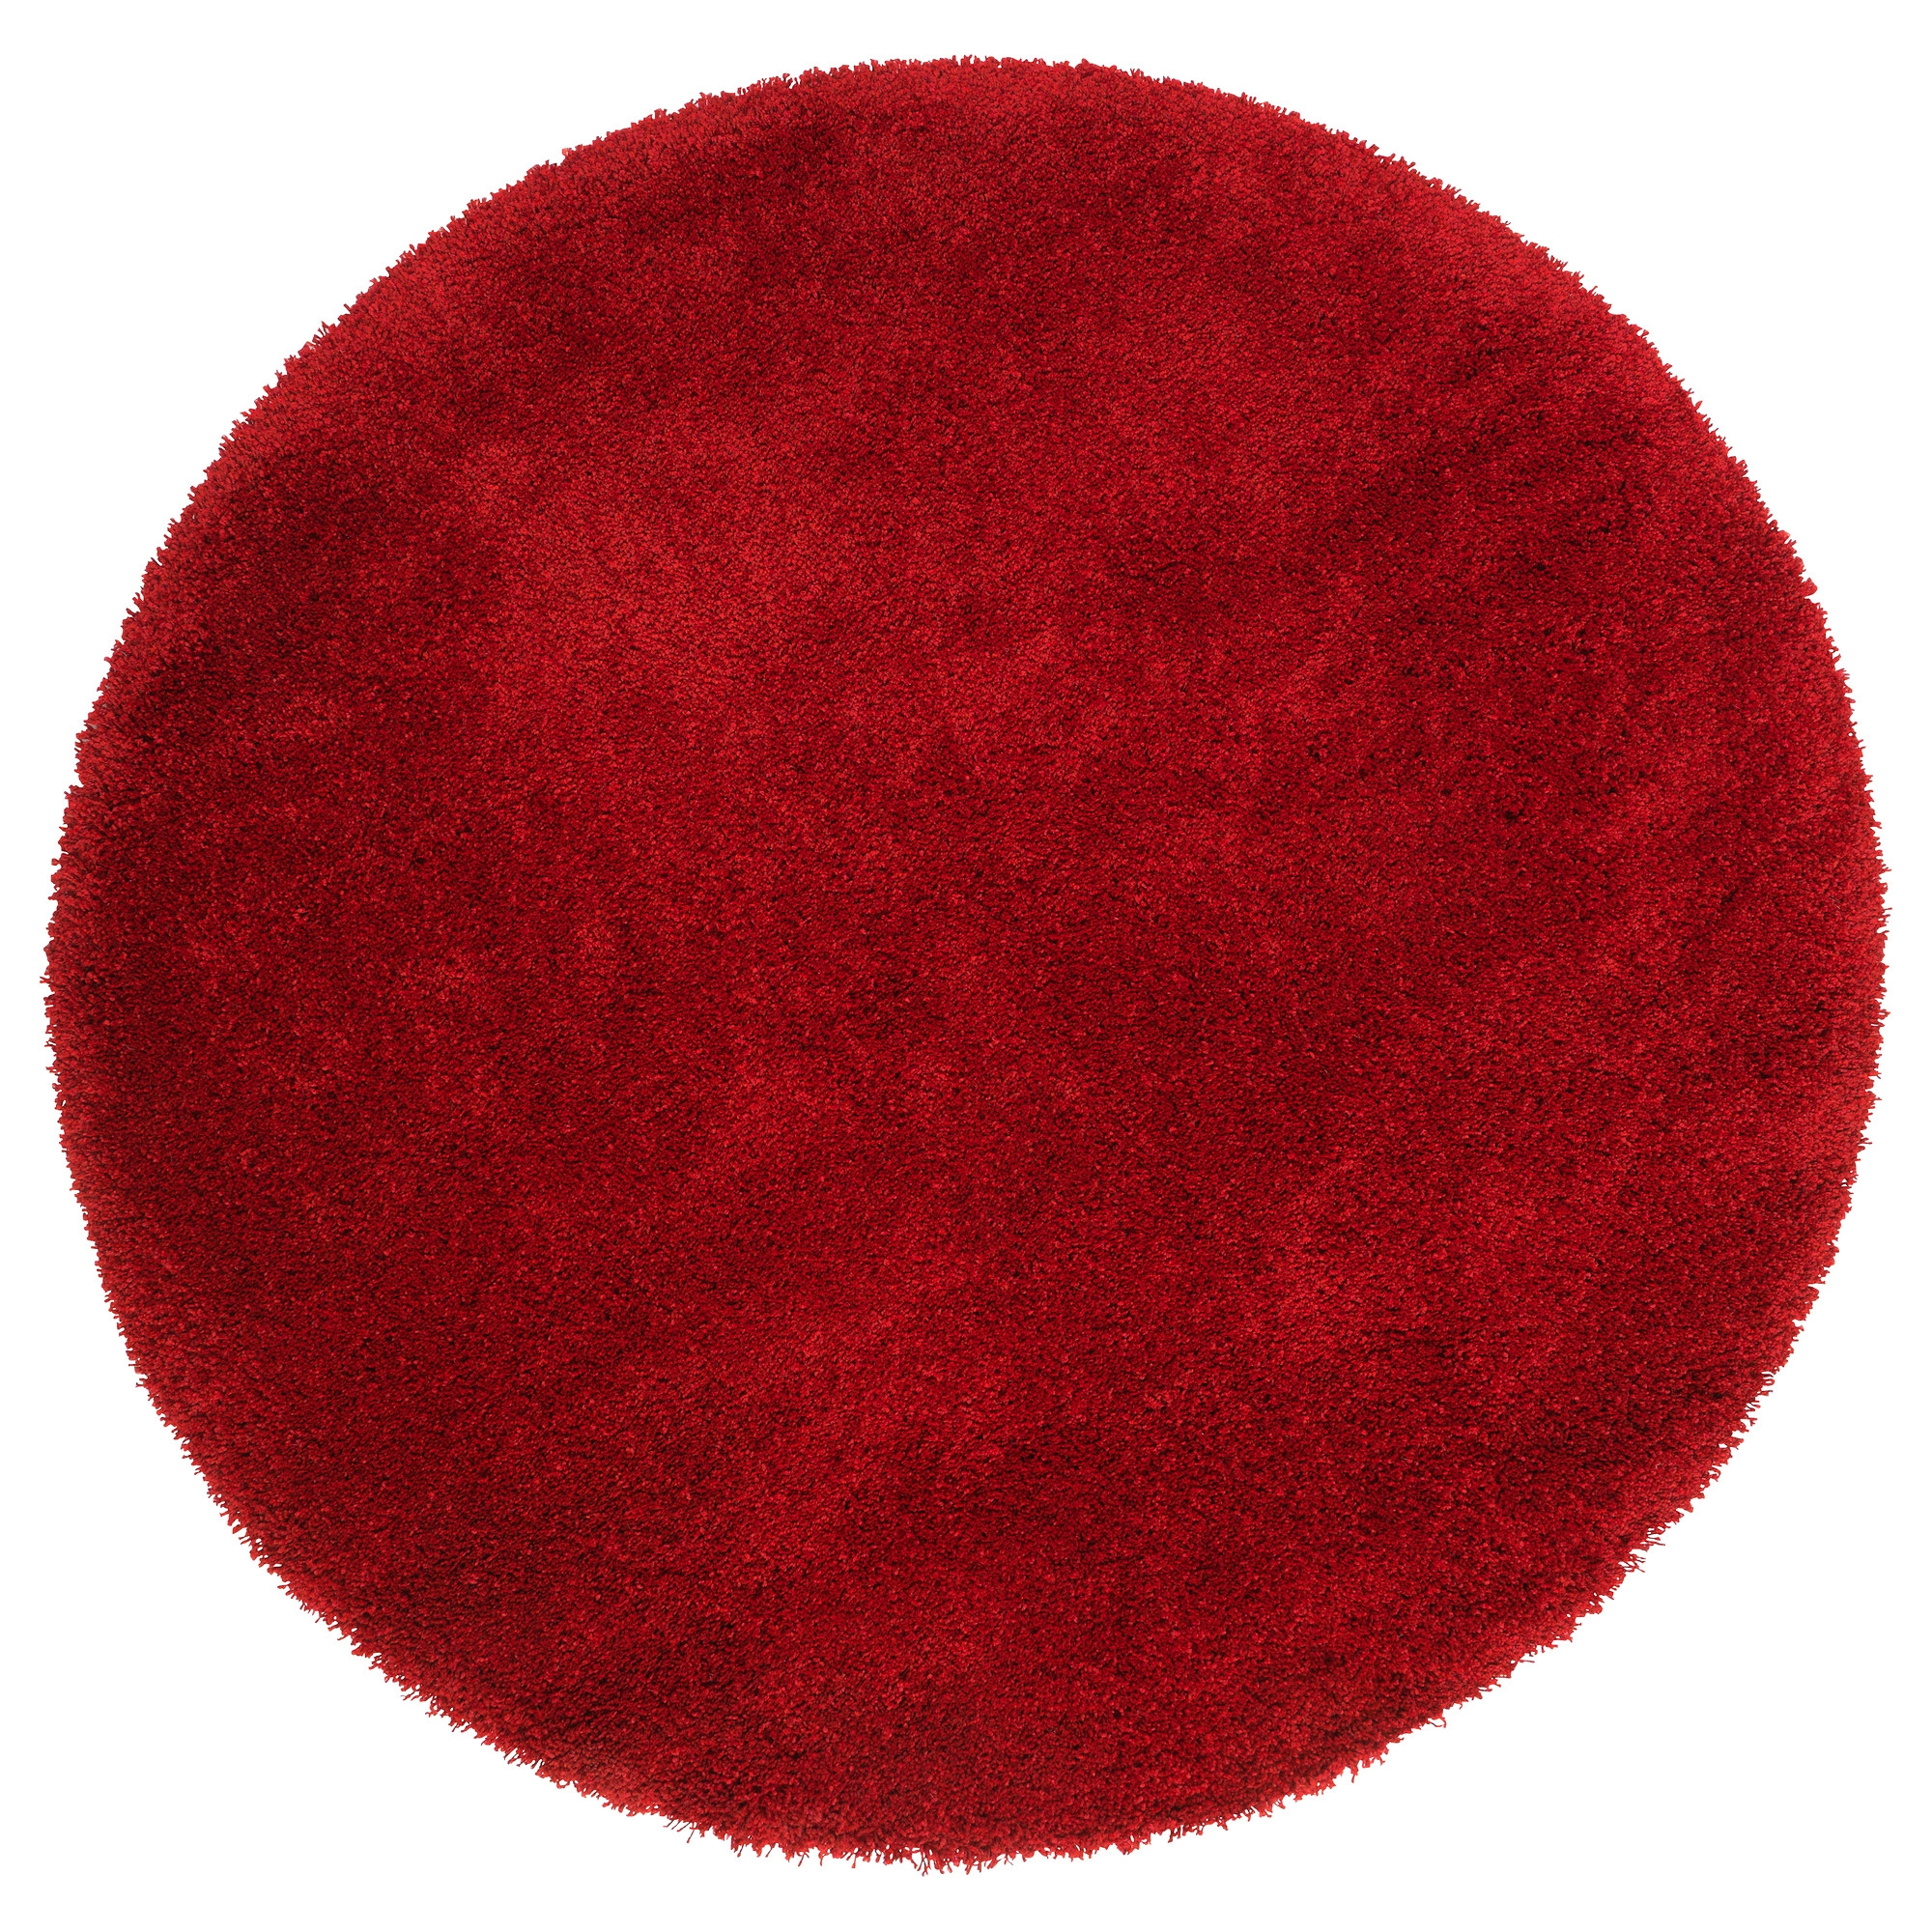 Permalink to Round Red Bathroom Rug